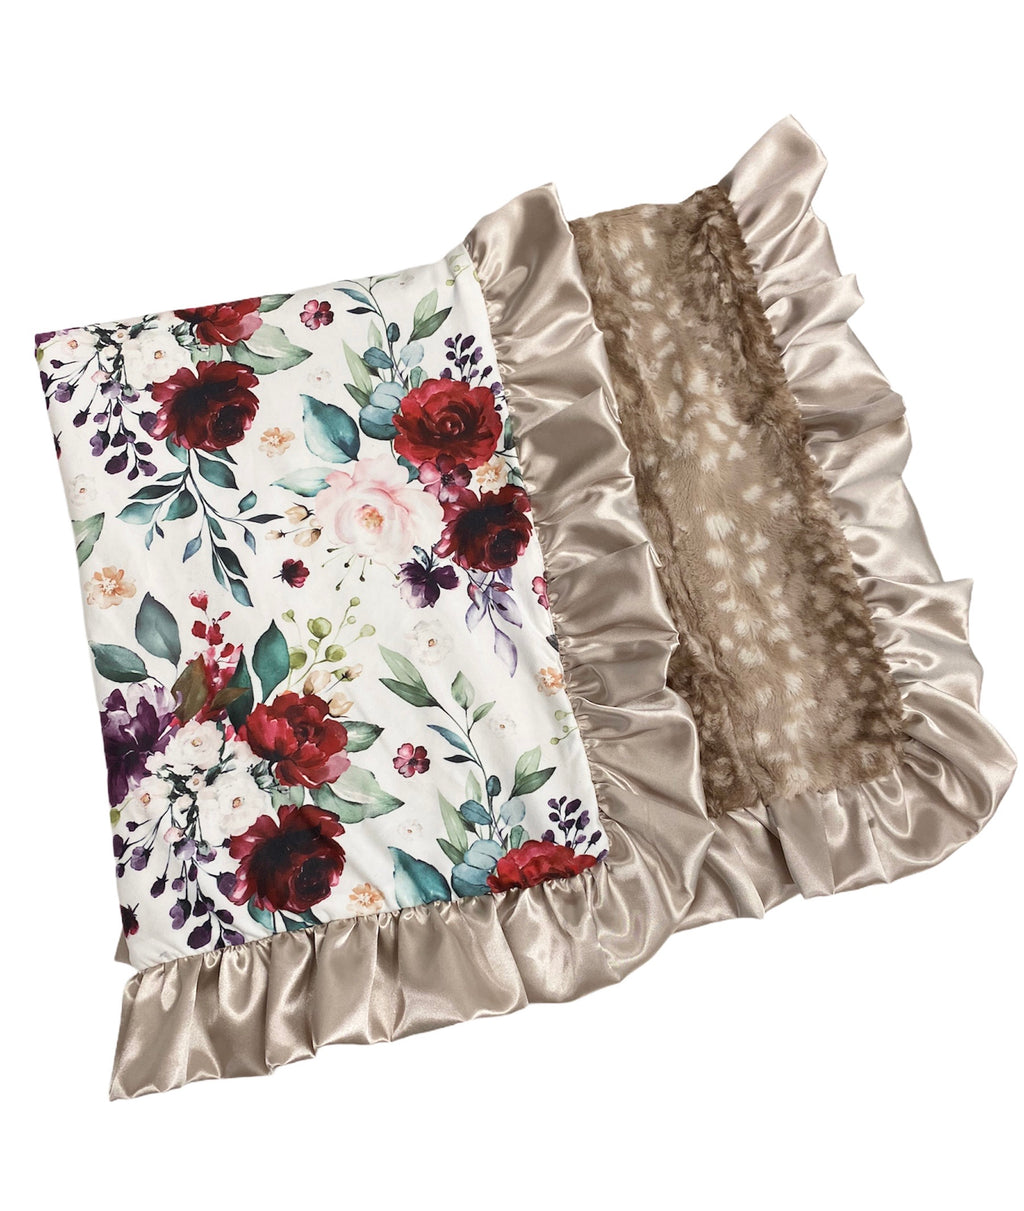 Lush Floral/ Fawn Blanket